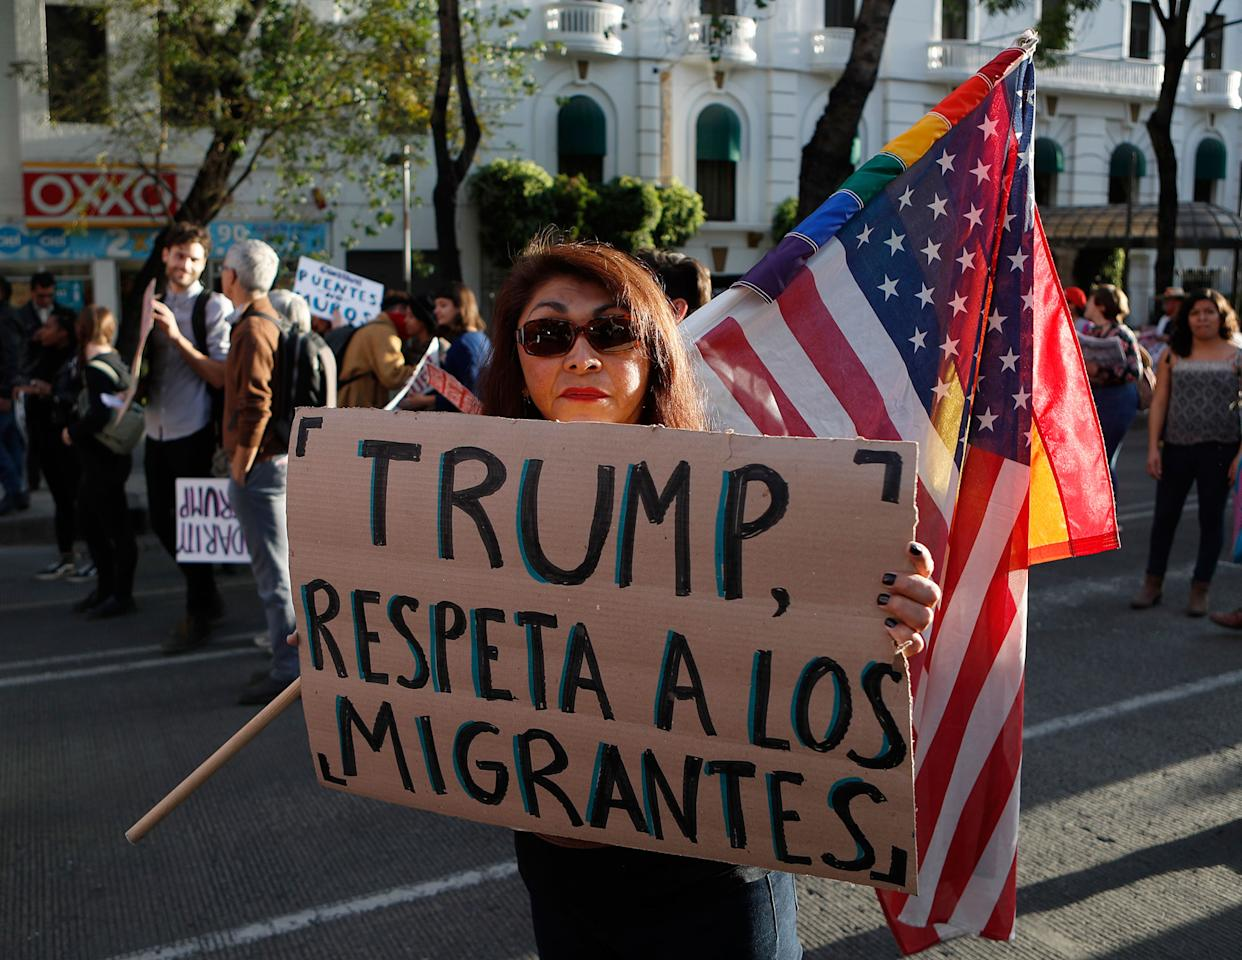 "<p>A woman holds a sign that reads in Spanish ""Trump, respect migrants"" during a march called by a local women's movement against U.S. President Donald Trump in Mexico City, Friday, Jan. 20, 2017. Donald Trump became the 45th president of the United States Friday, Jan. 20 2017, amid apprehension in Mexico regarding his previous comments about Mexico and his promise to build a border wall to halt migration. (AP Photo/Eduardo Verdugo) </p>"